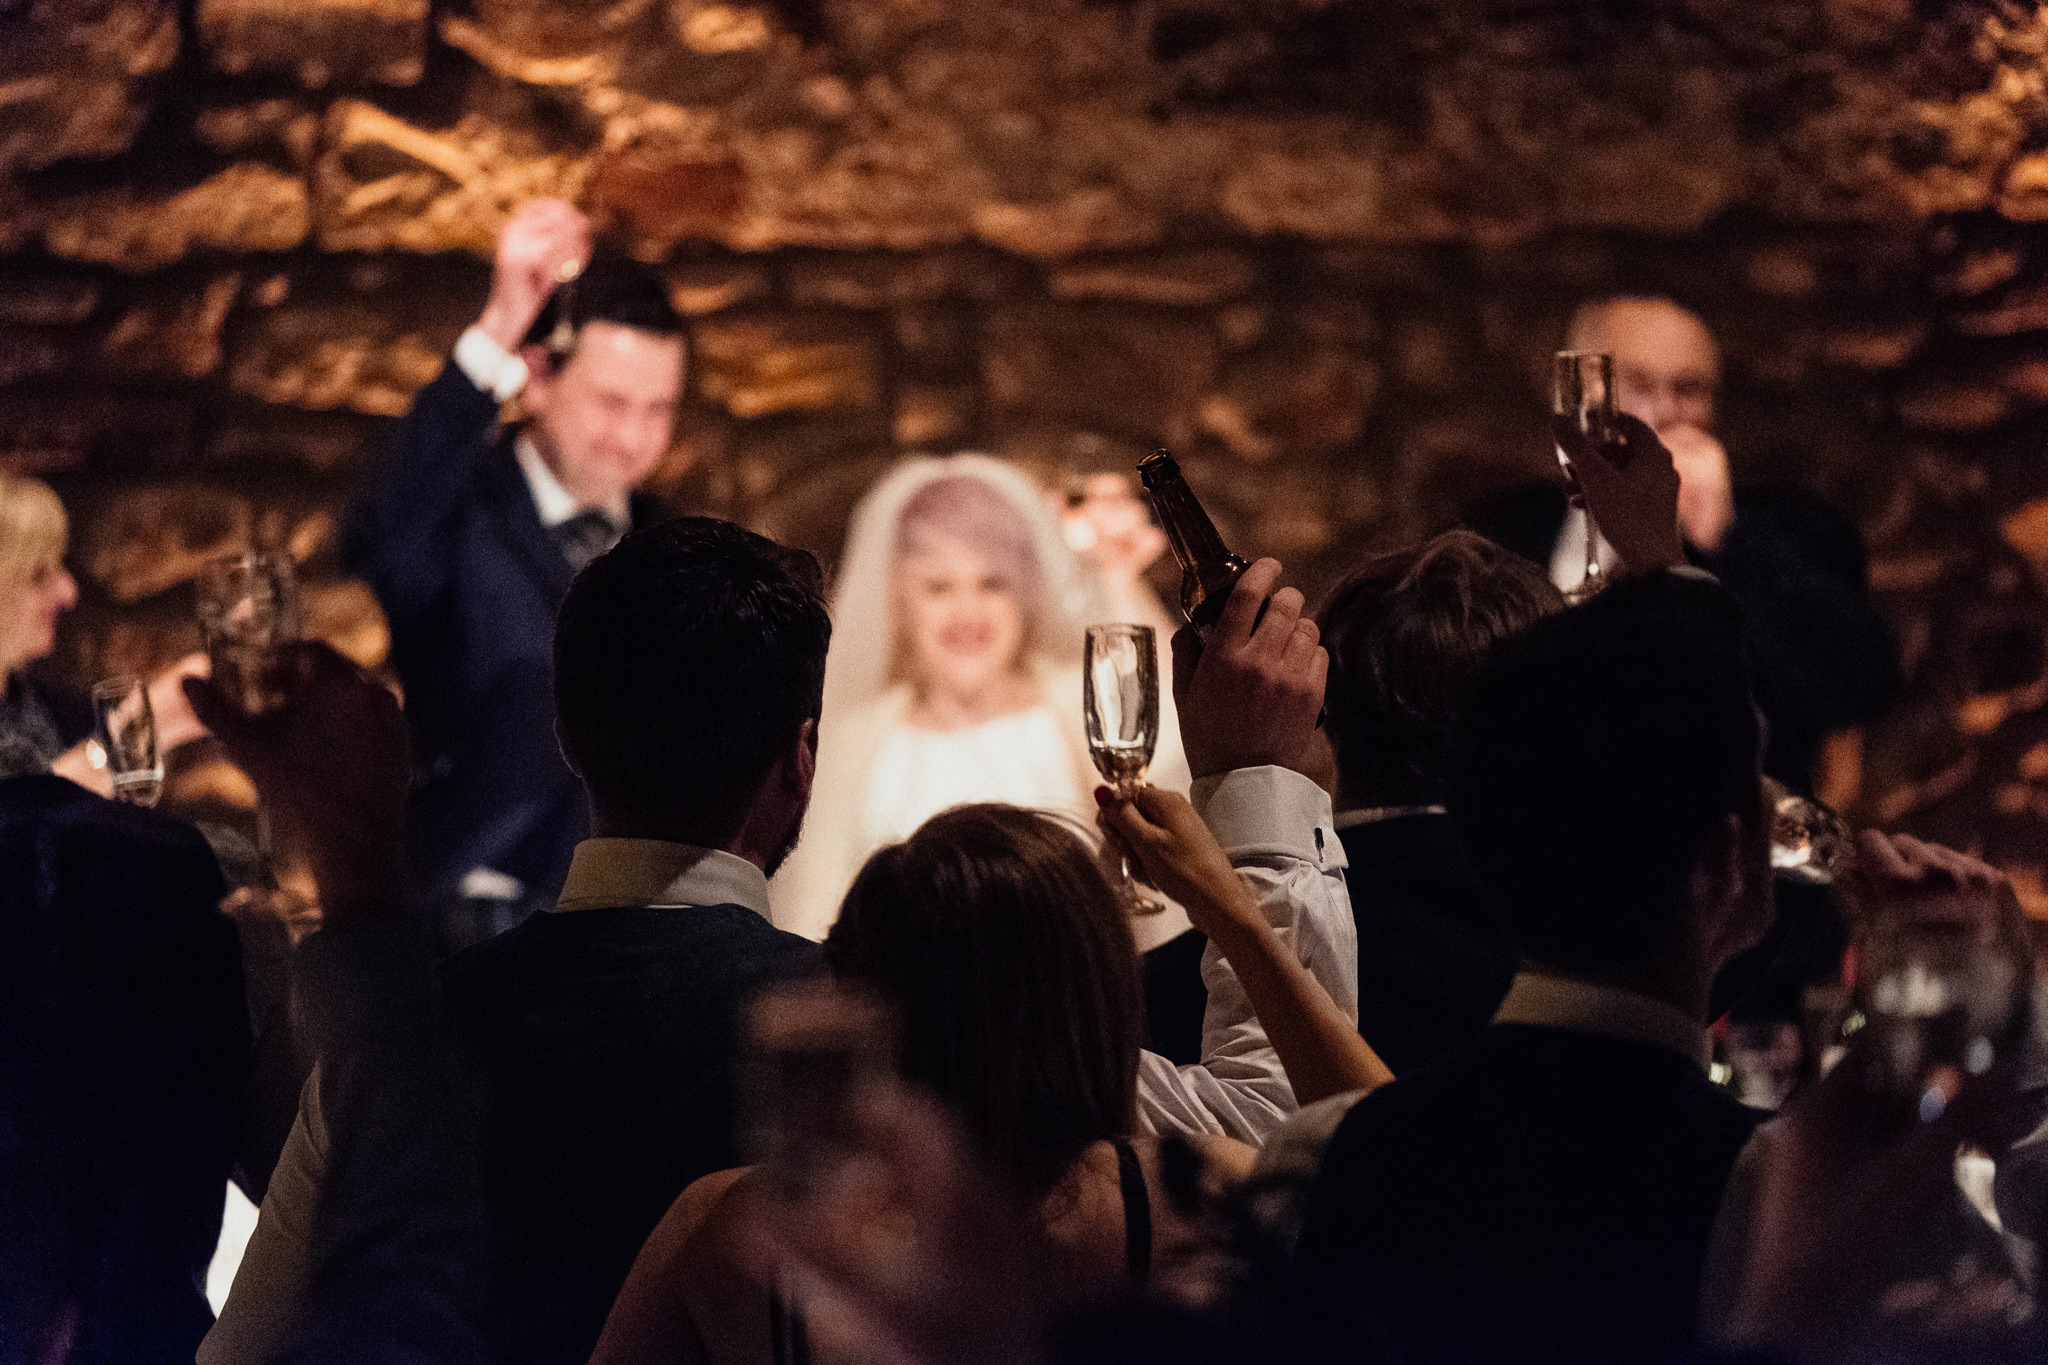 Fun Family Barn Wedding - Kinkell Byre_032.jpg